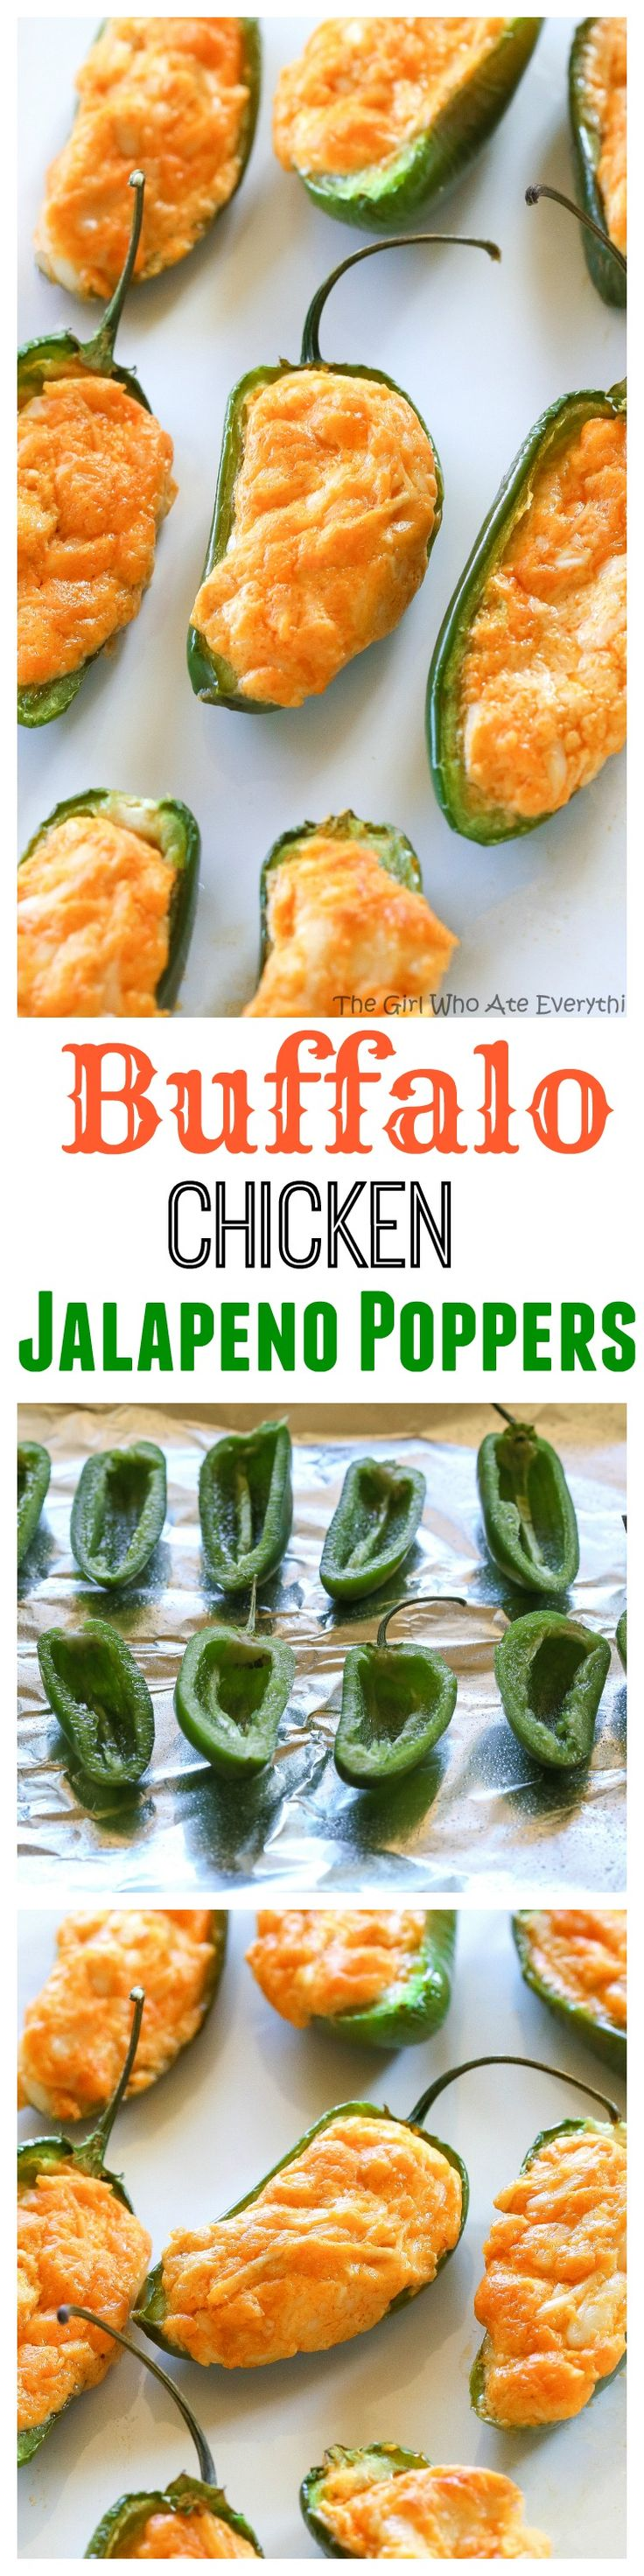 Buffalo Chicken Jalapeno Poppers - buffalo chicken dip meets jalapenos! Game food right here.